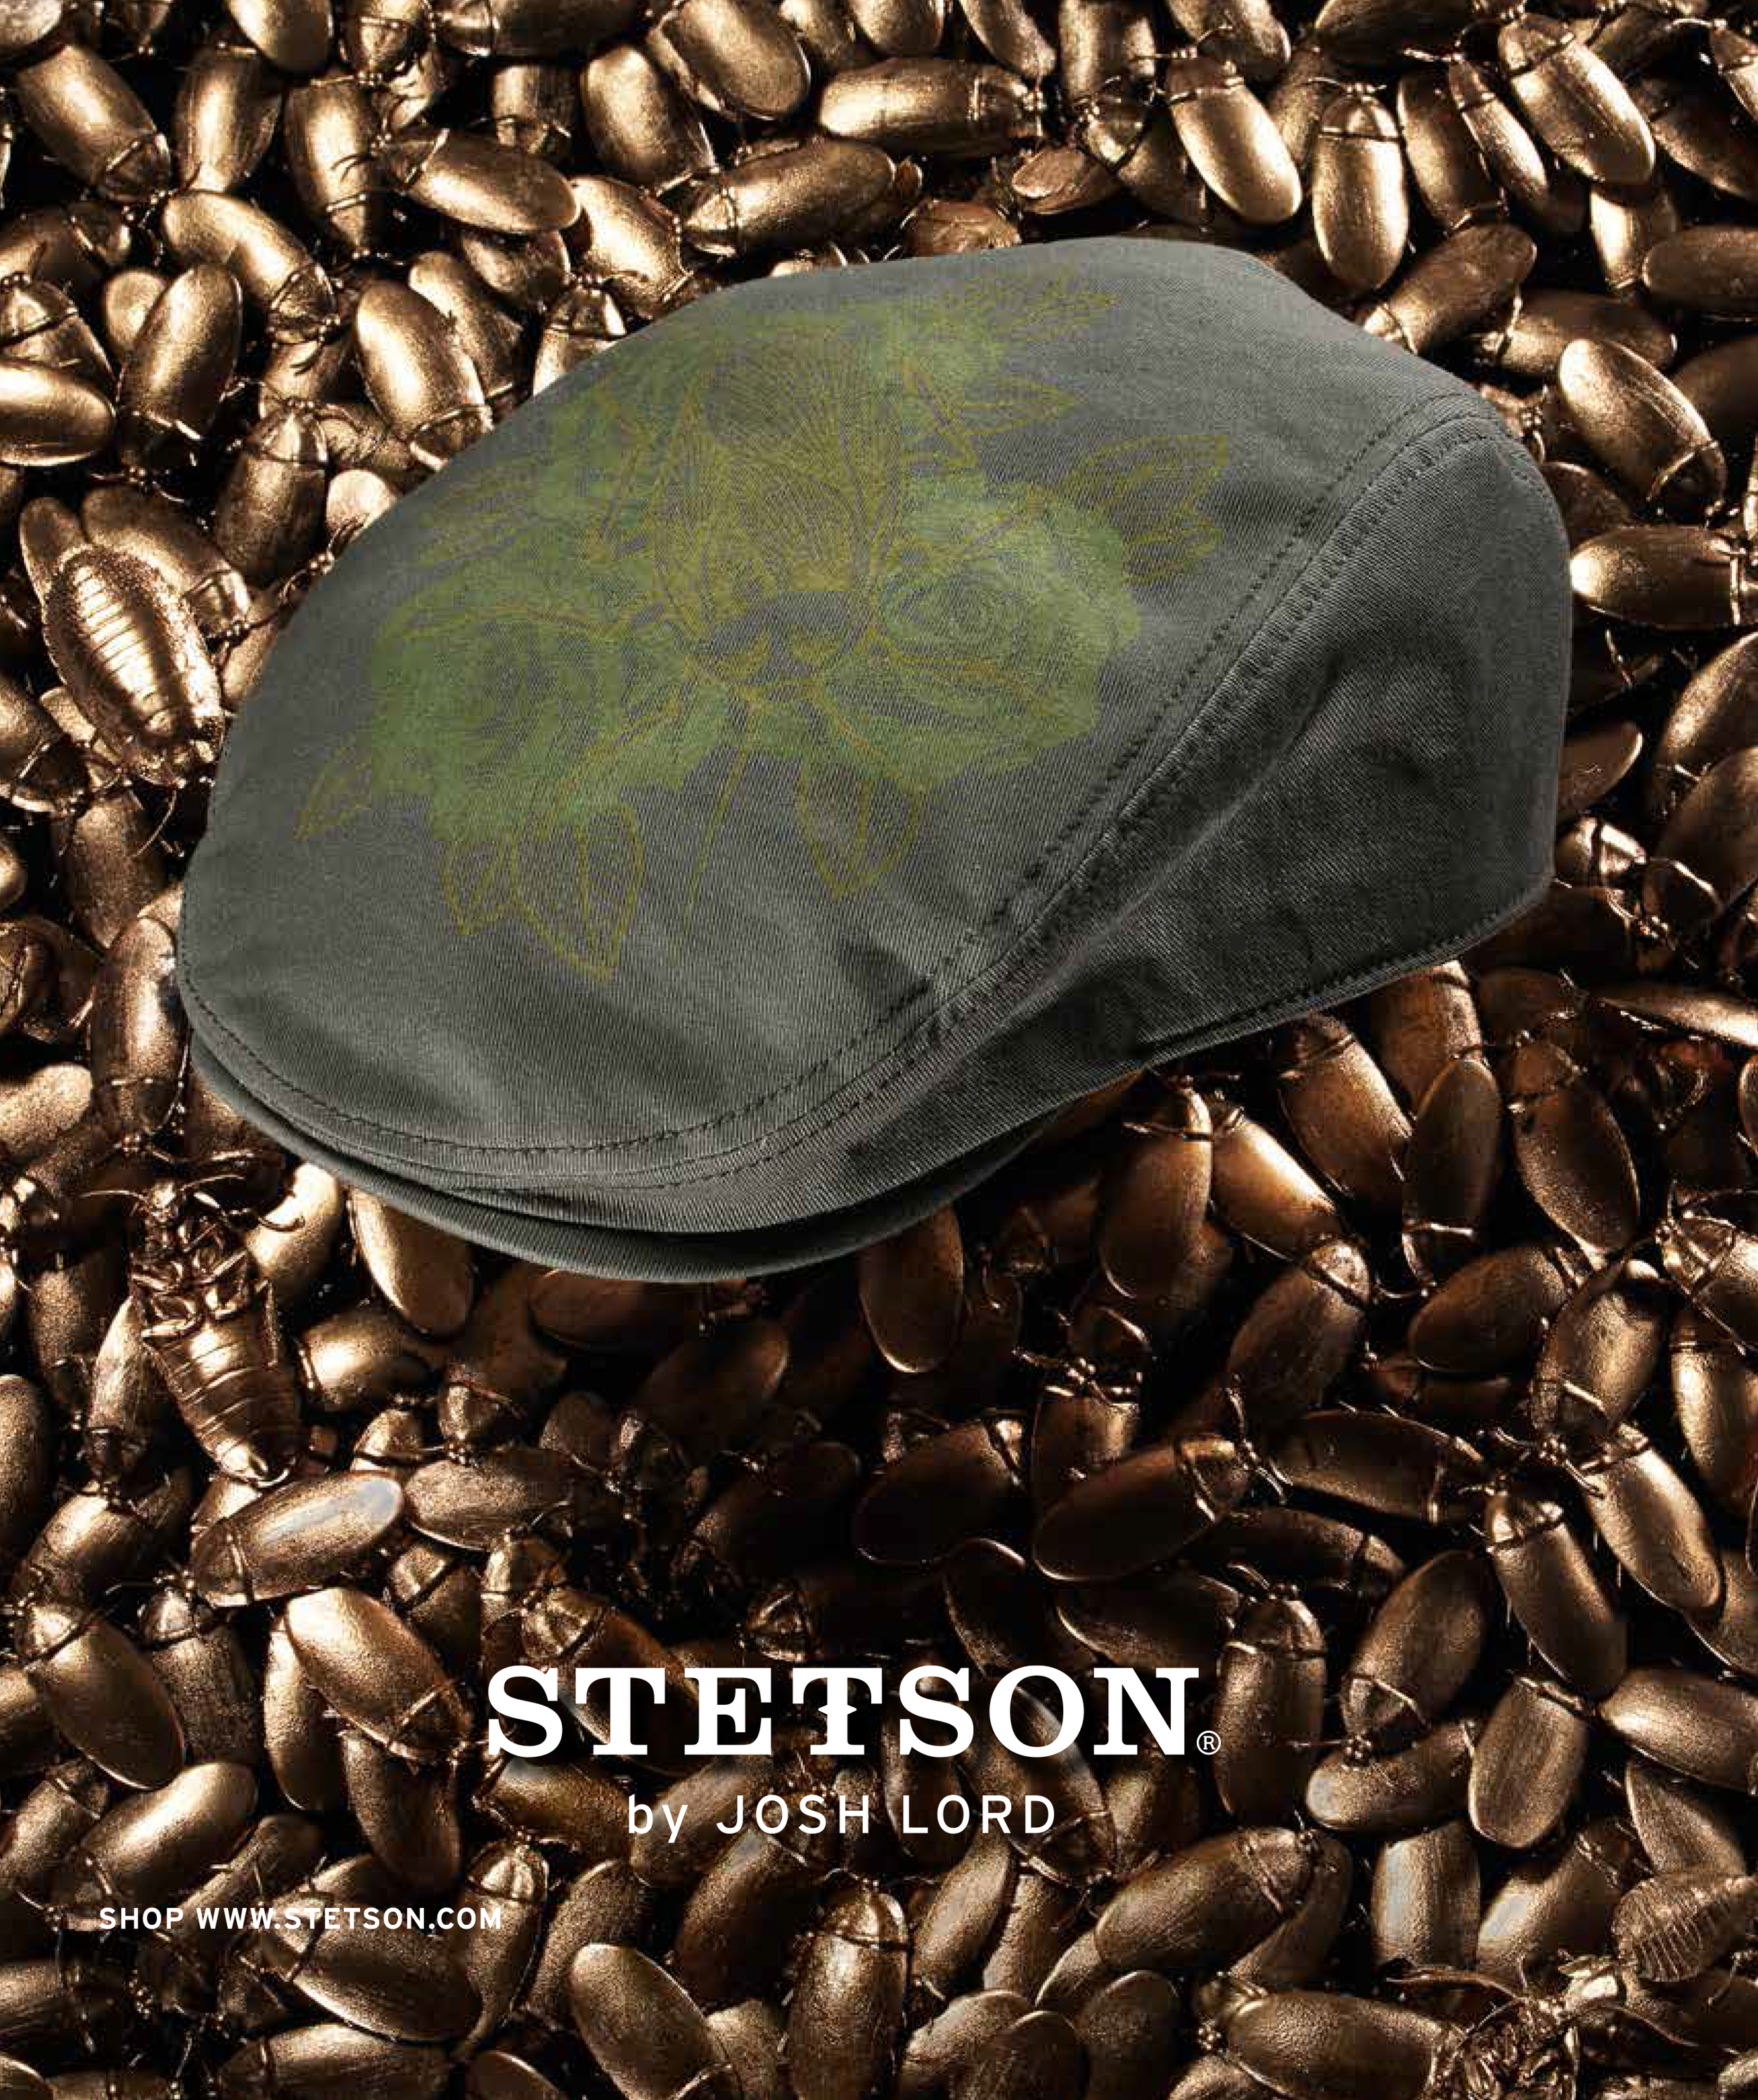 Creative direction & design for 2014 Stetson campaign